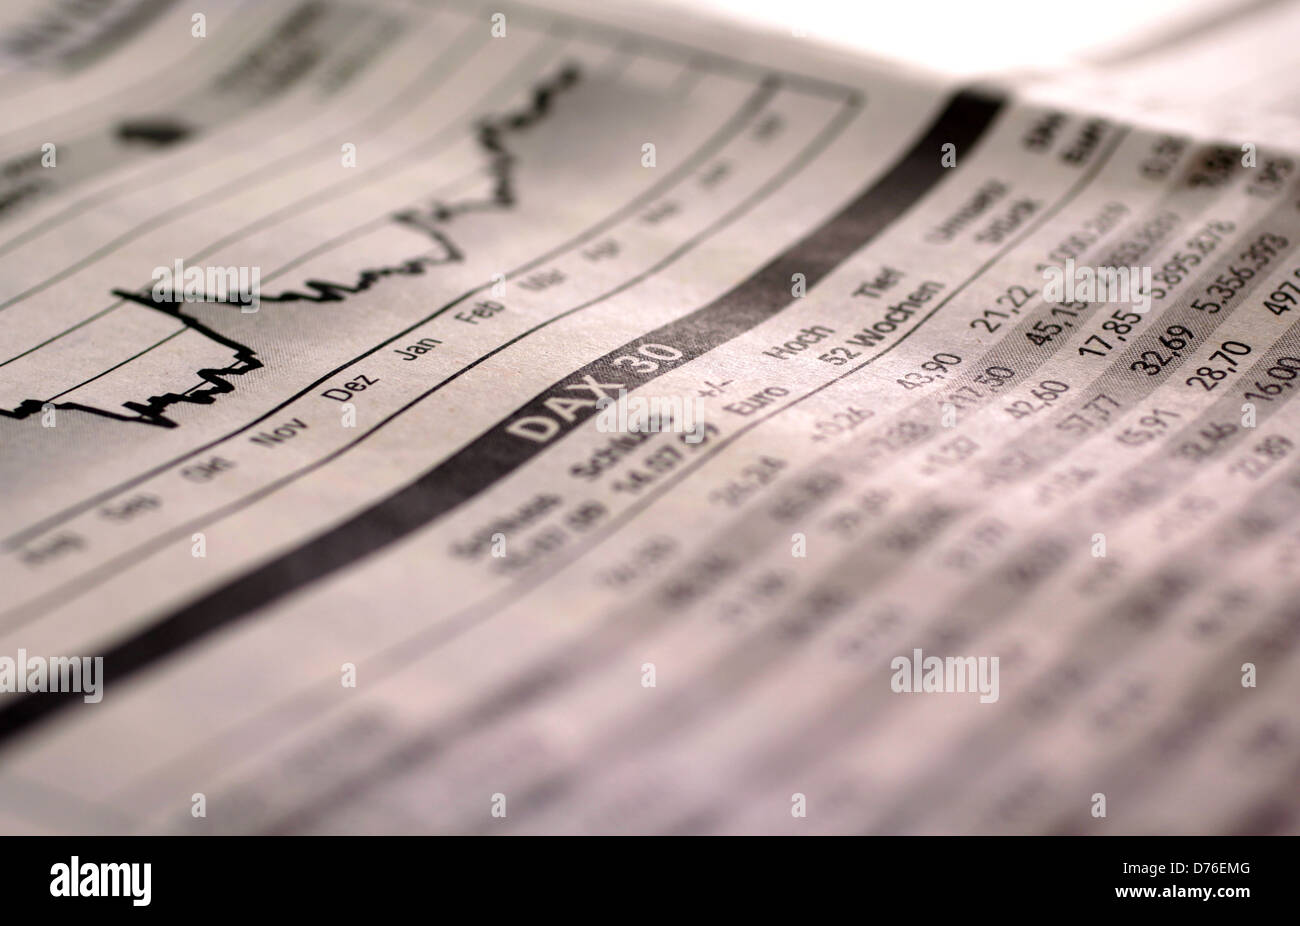 Falling stock index DAX in German newspaper - Stock Image